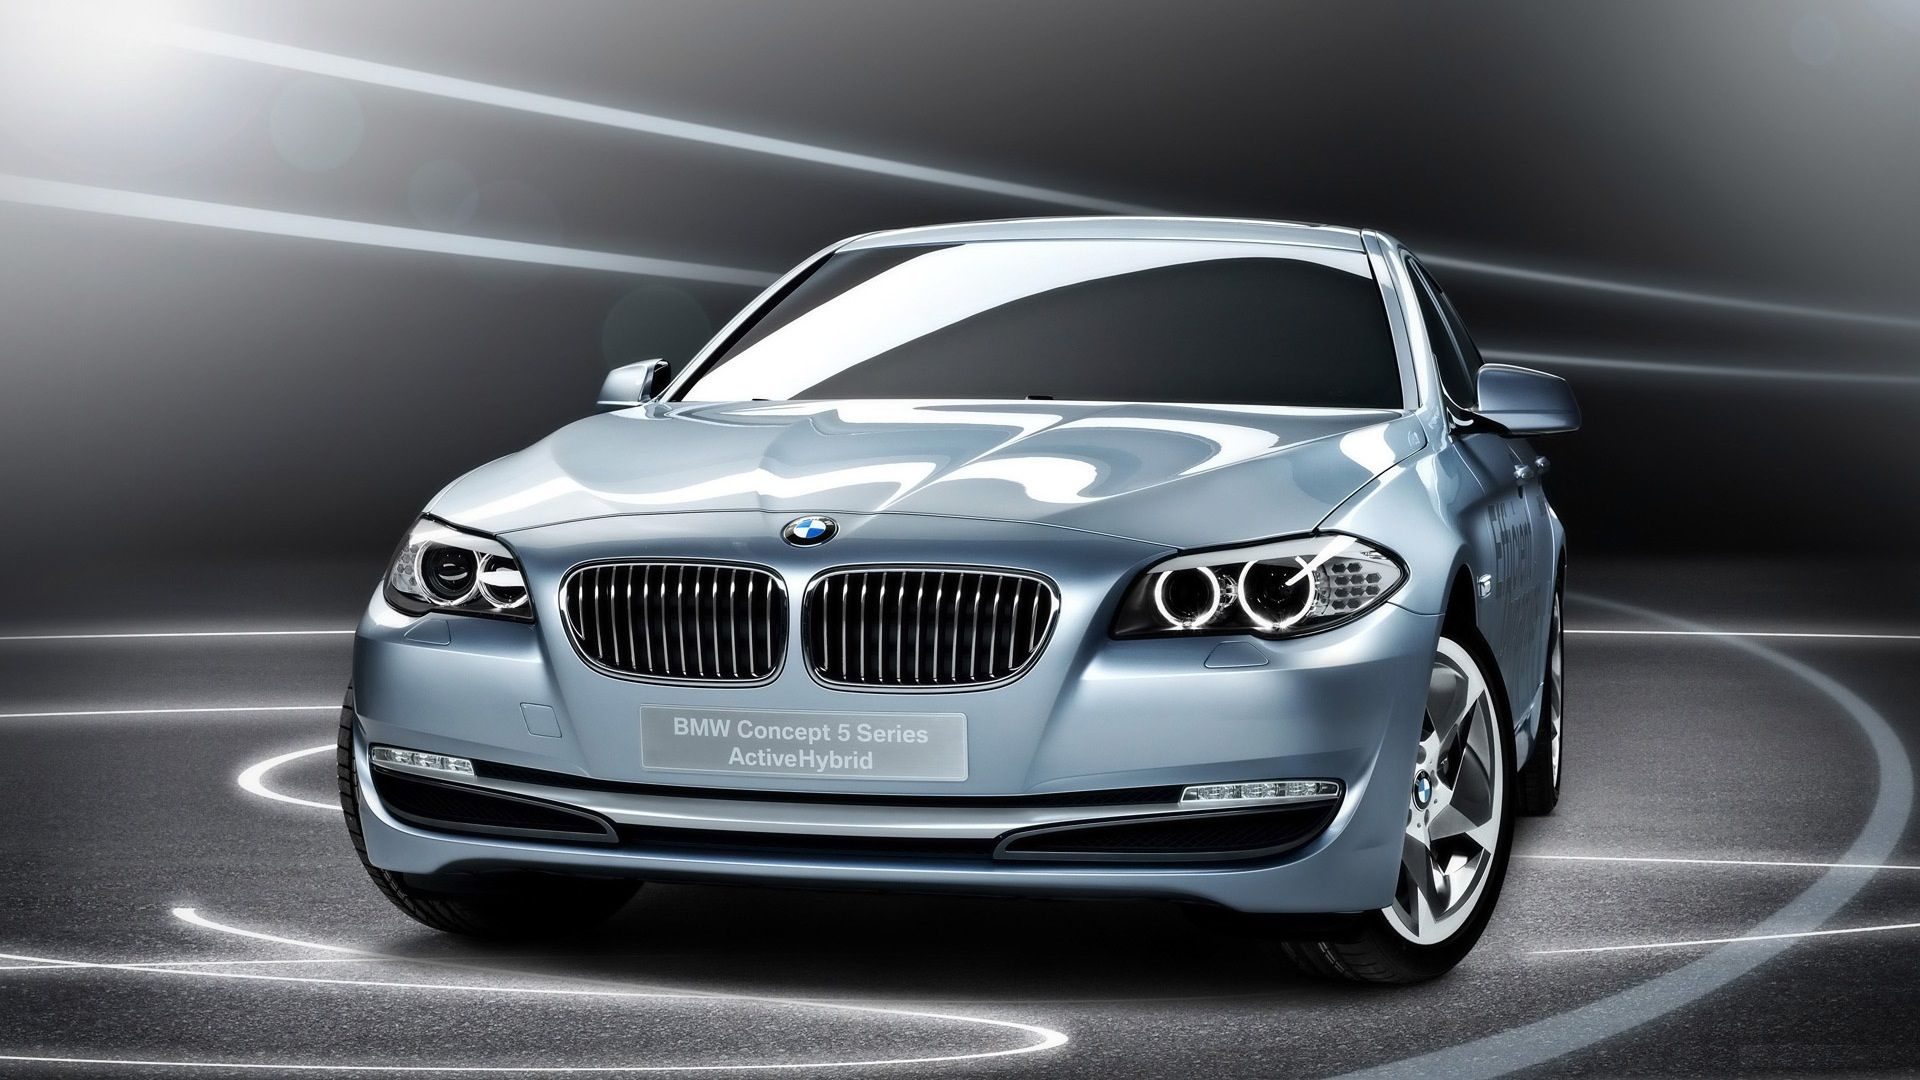 Bmw 5 Series Blue Pearl Wallpaper 1080p Bmw Bmw Concept Bmw Series